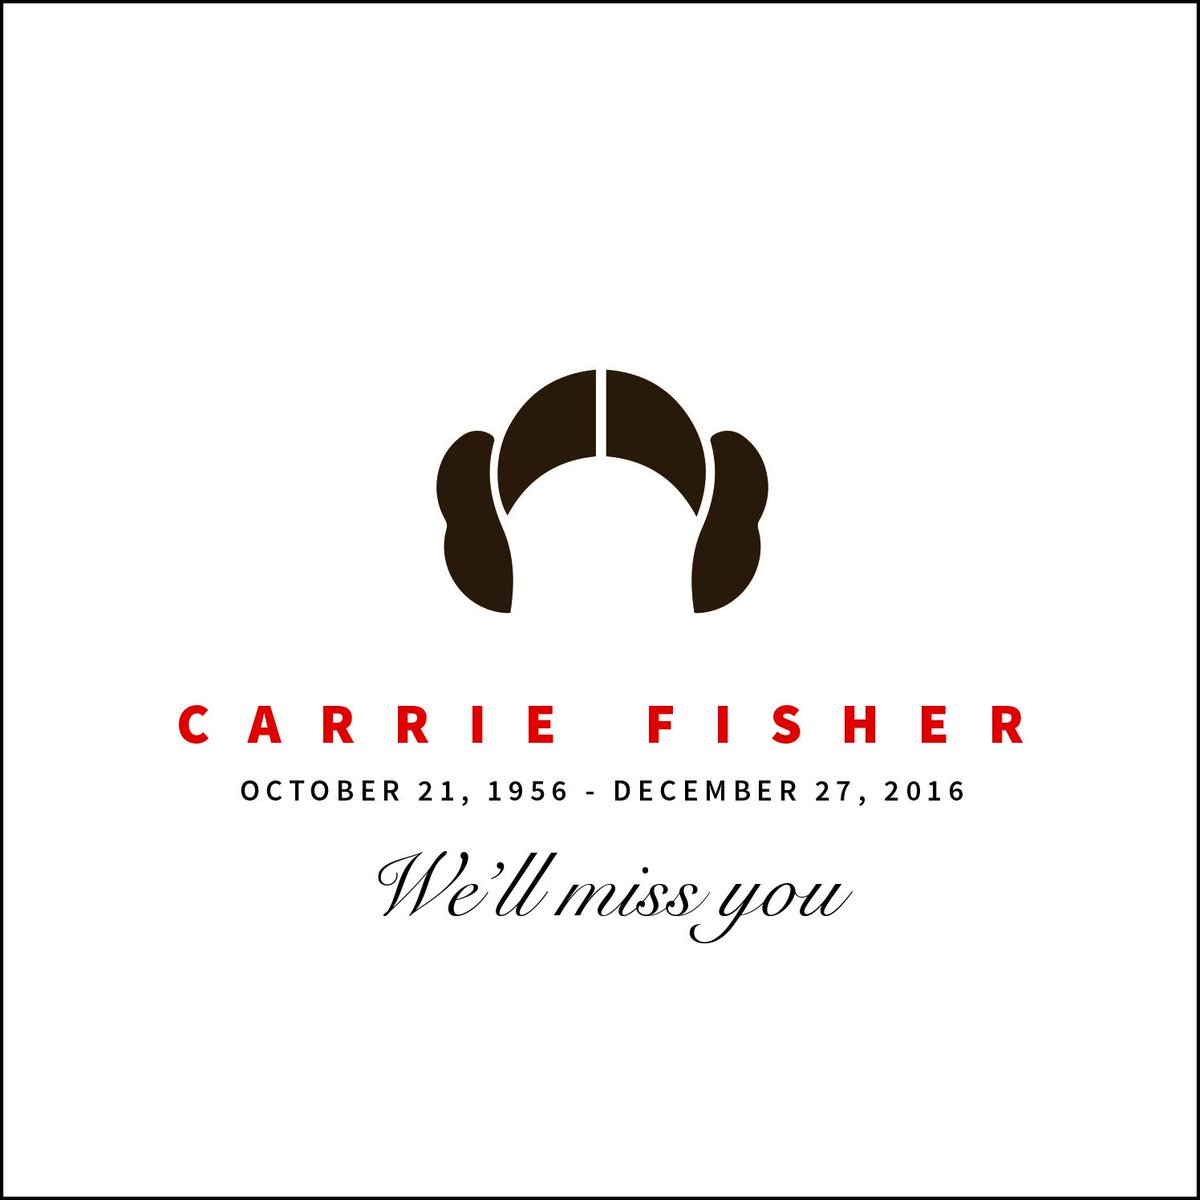 Thank you for everything Carrie. We'll never forget your legendary work. https://t.co/jgrgJqIFba